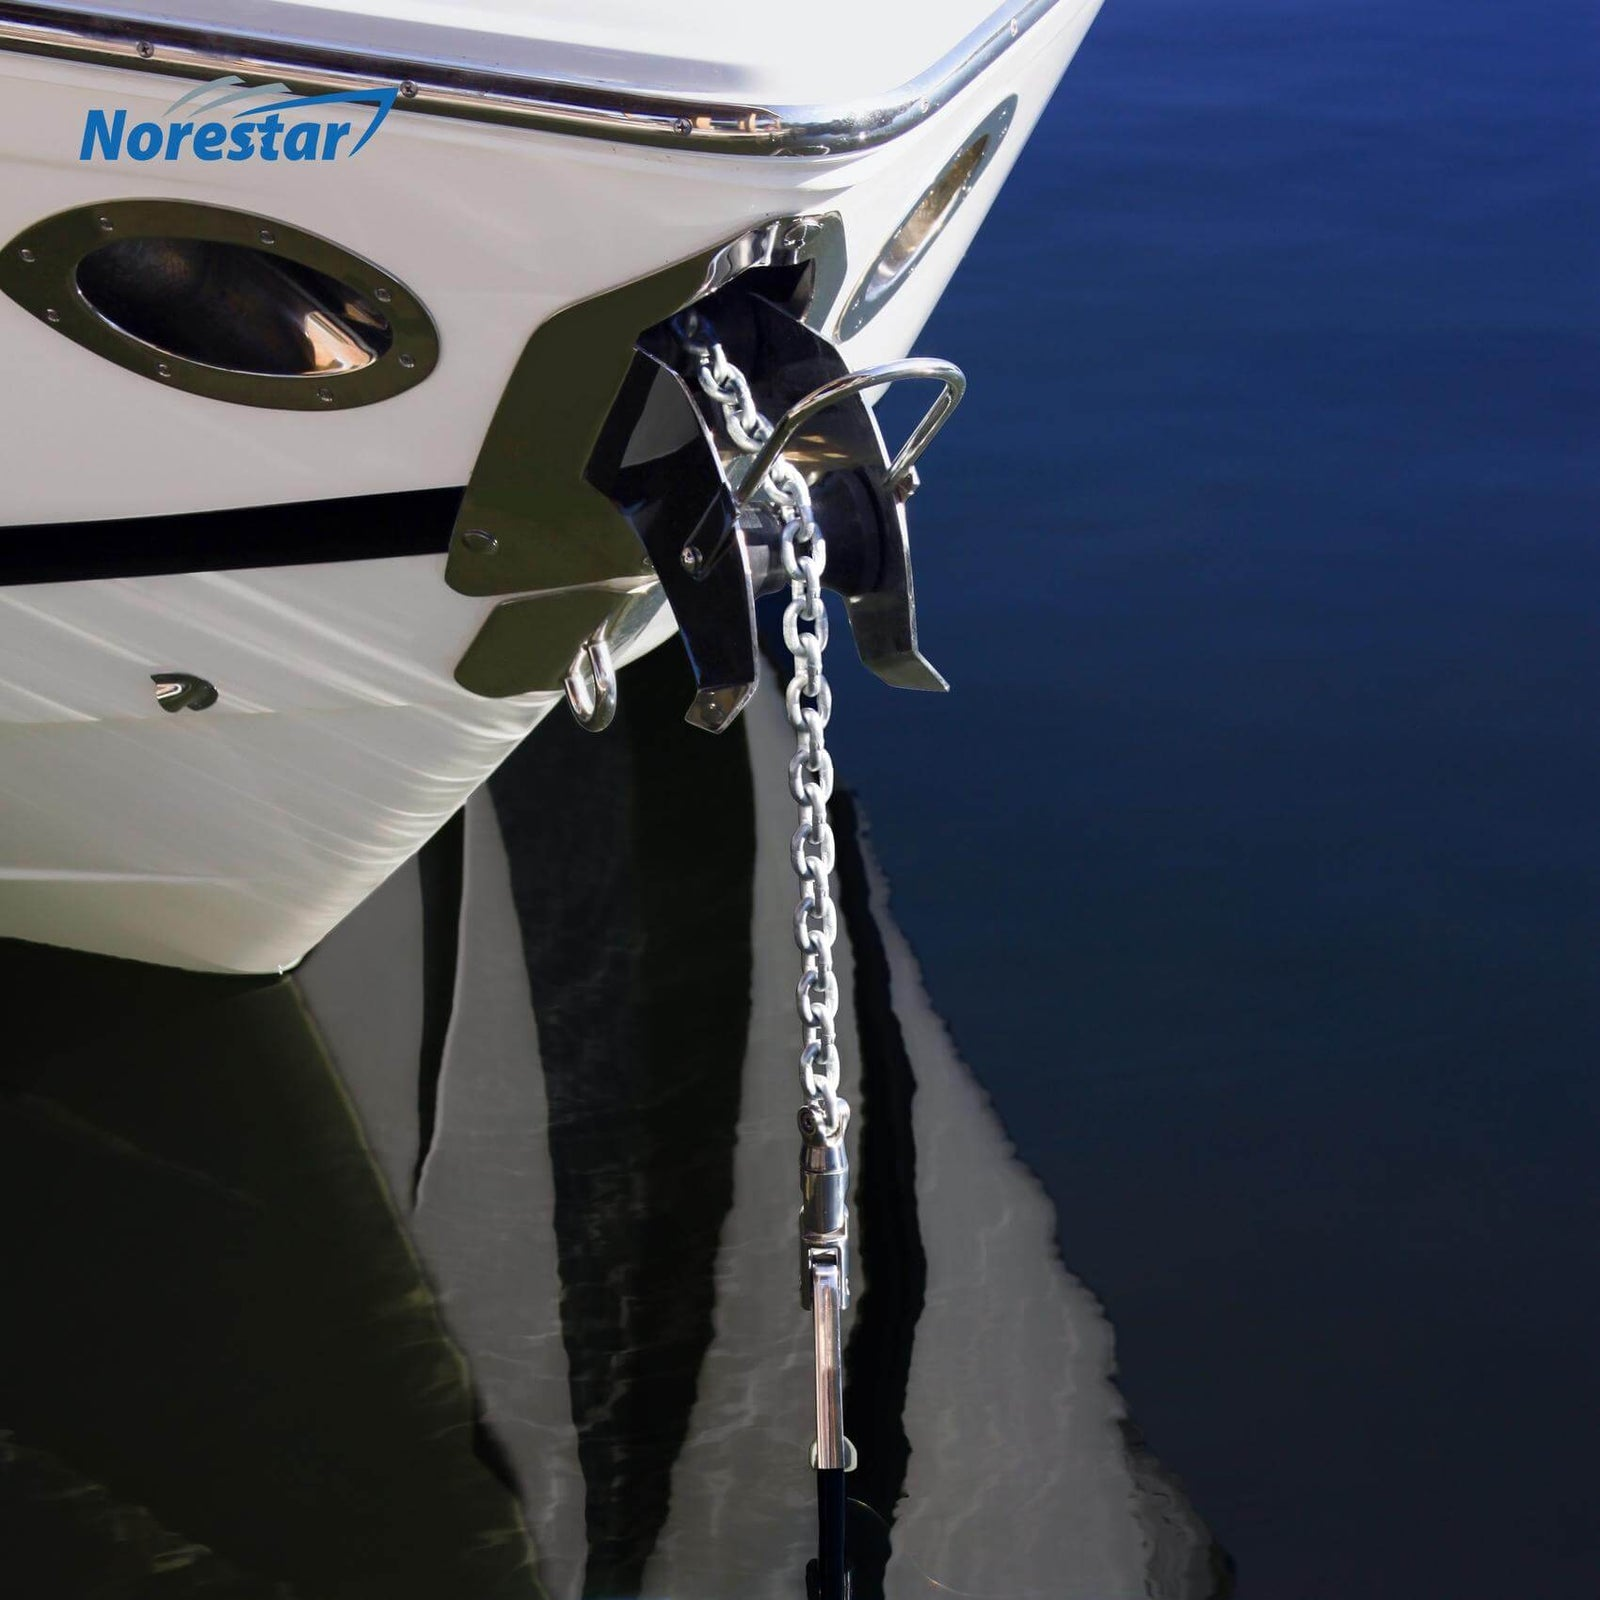 Norestar Double-Braided Nylon Anchor Rode (Windlass Rode): Anchor Rope Pre-Spliced with HT G4 Chain - In Use